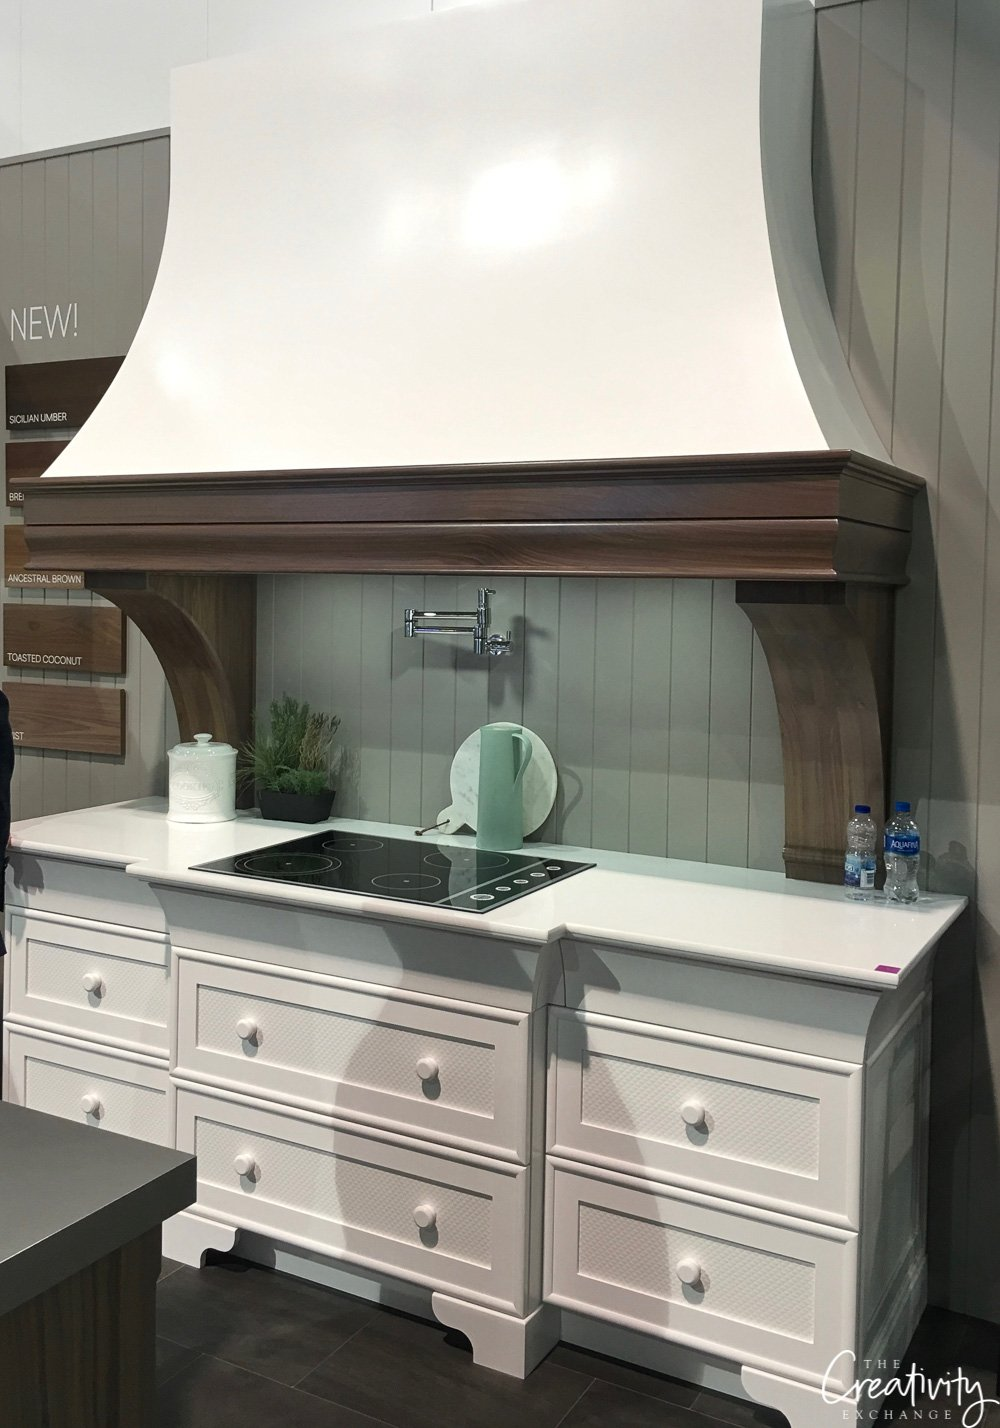 Kitchen cabinetry and hood